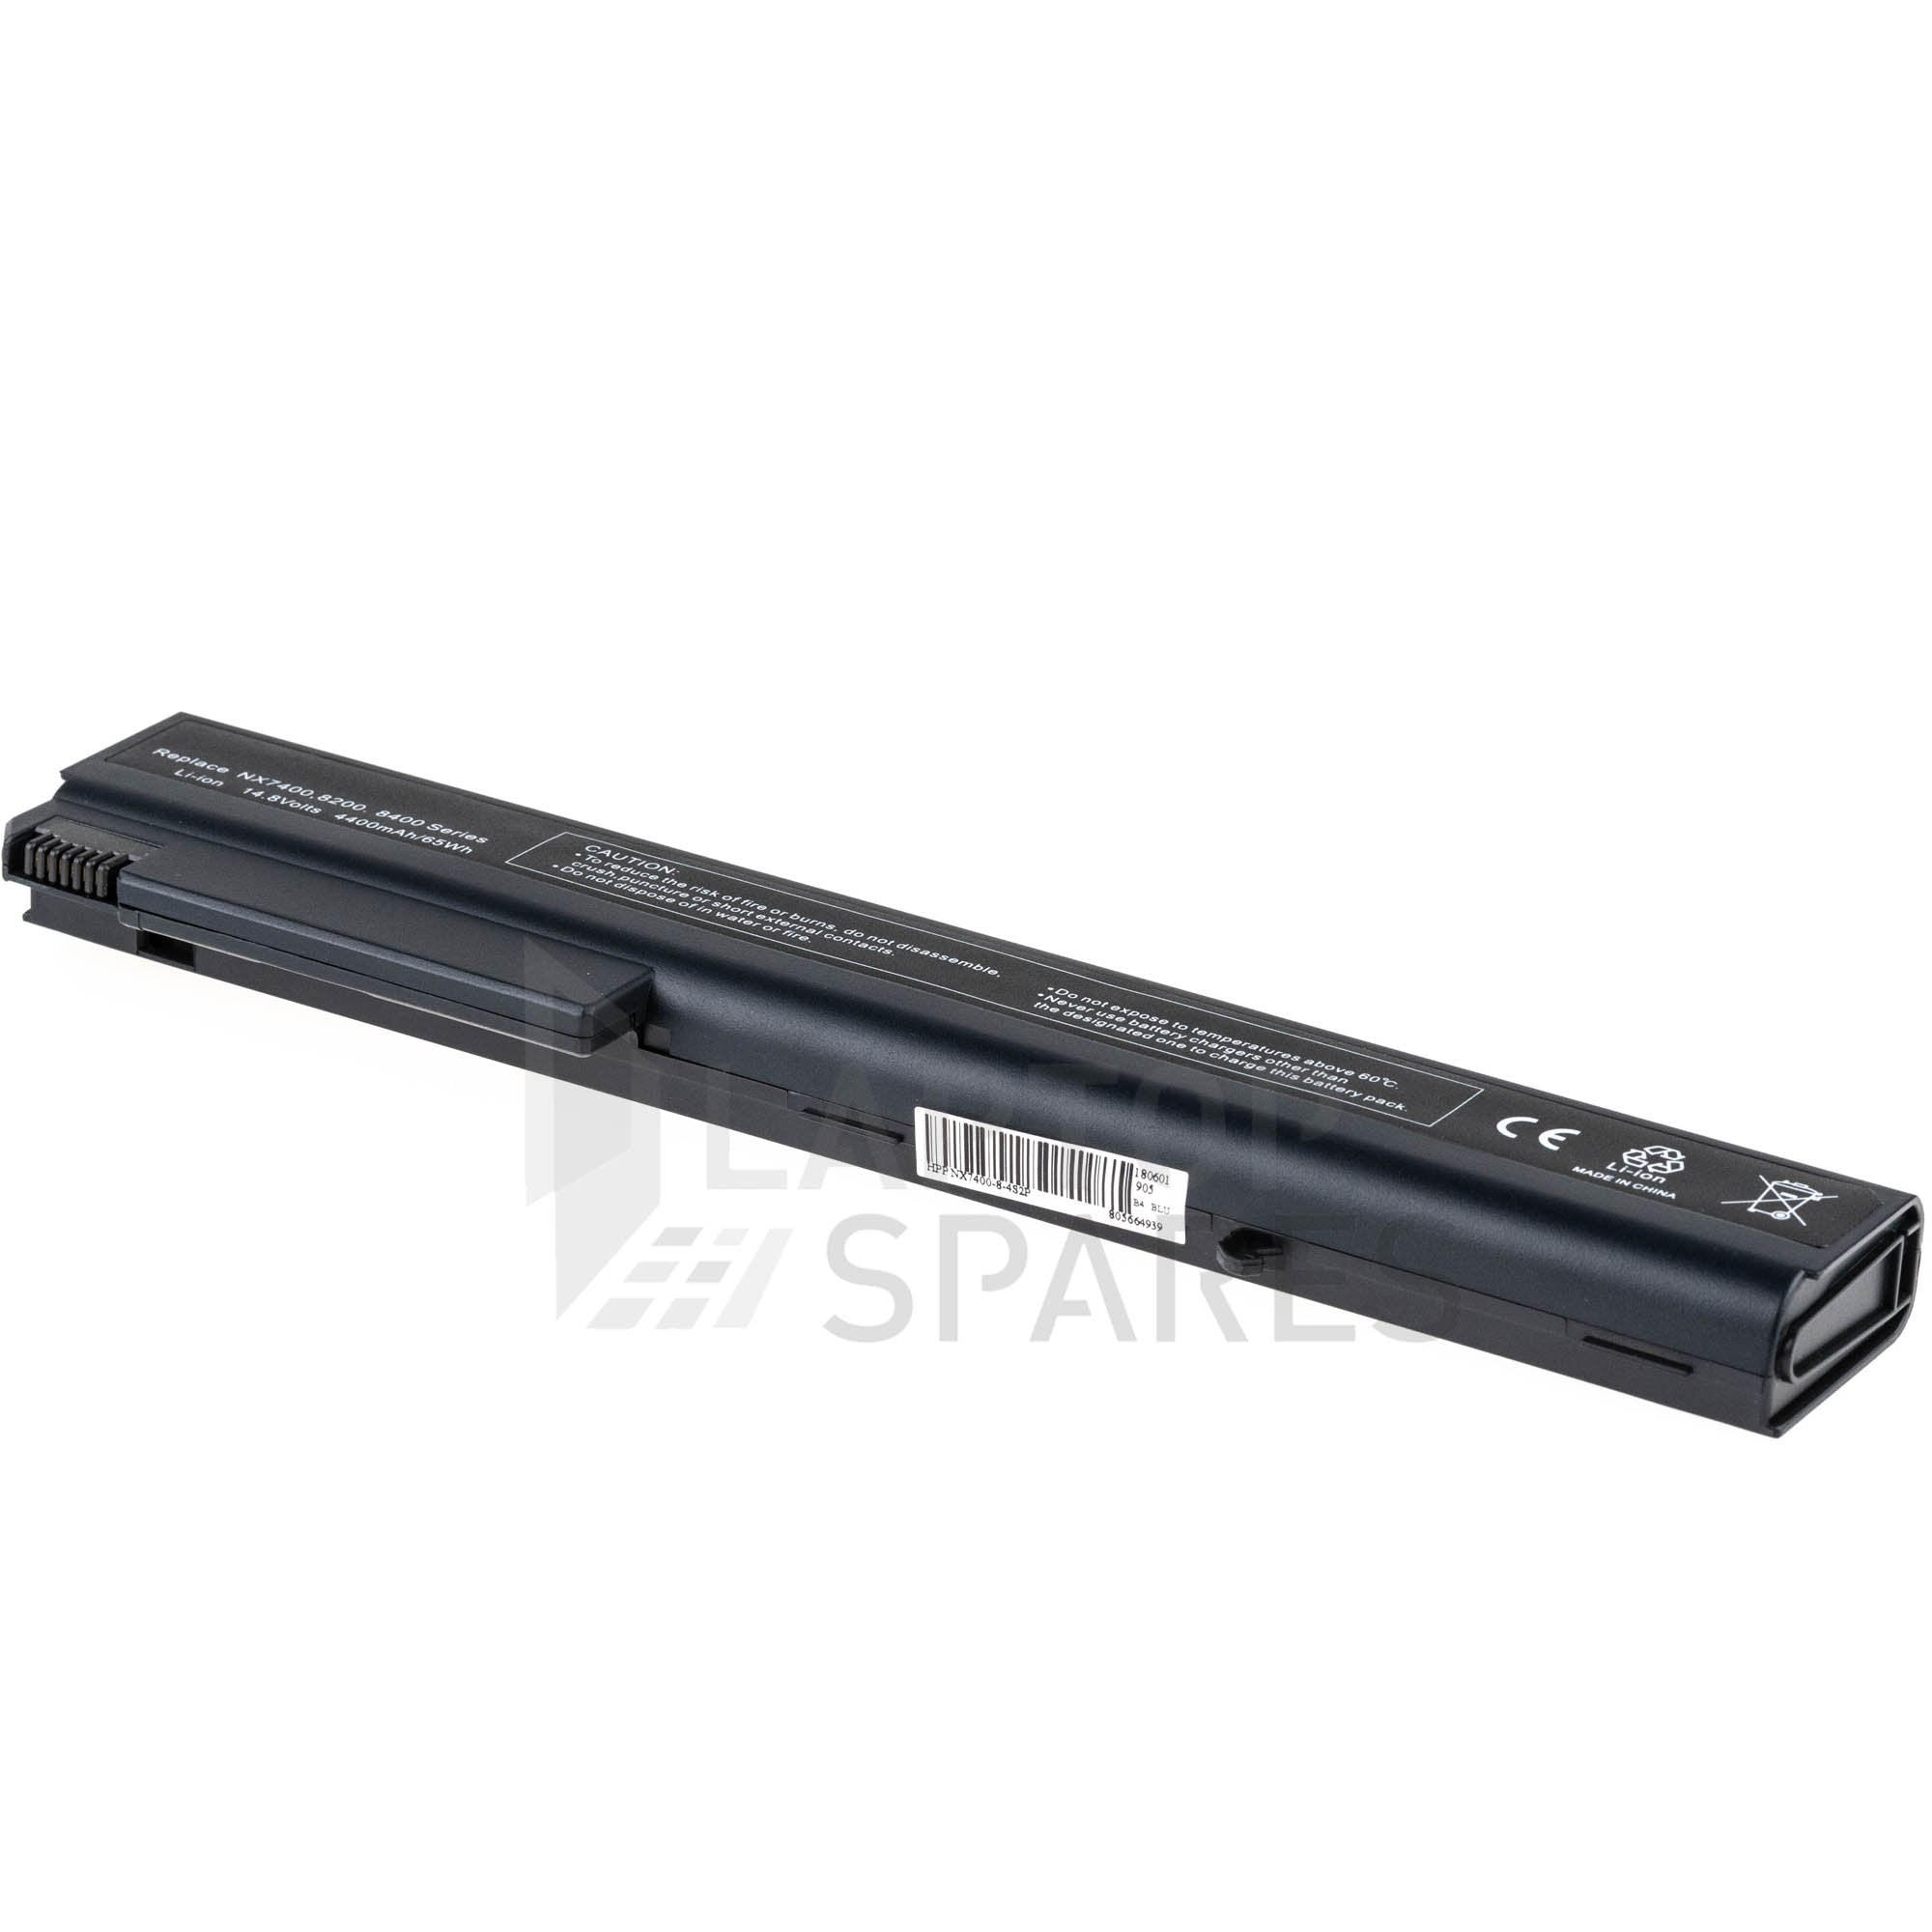 HP Business Notebook NX8200 4400mAh 6 Cell Battery